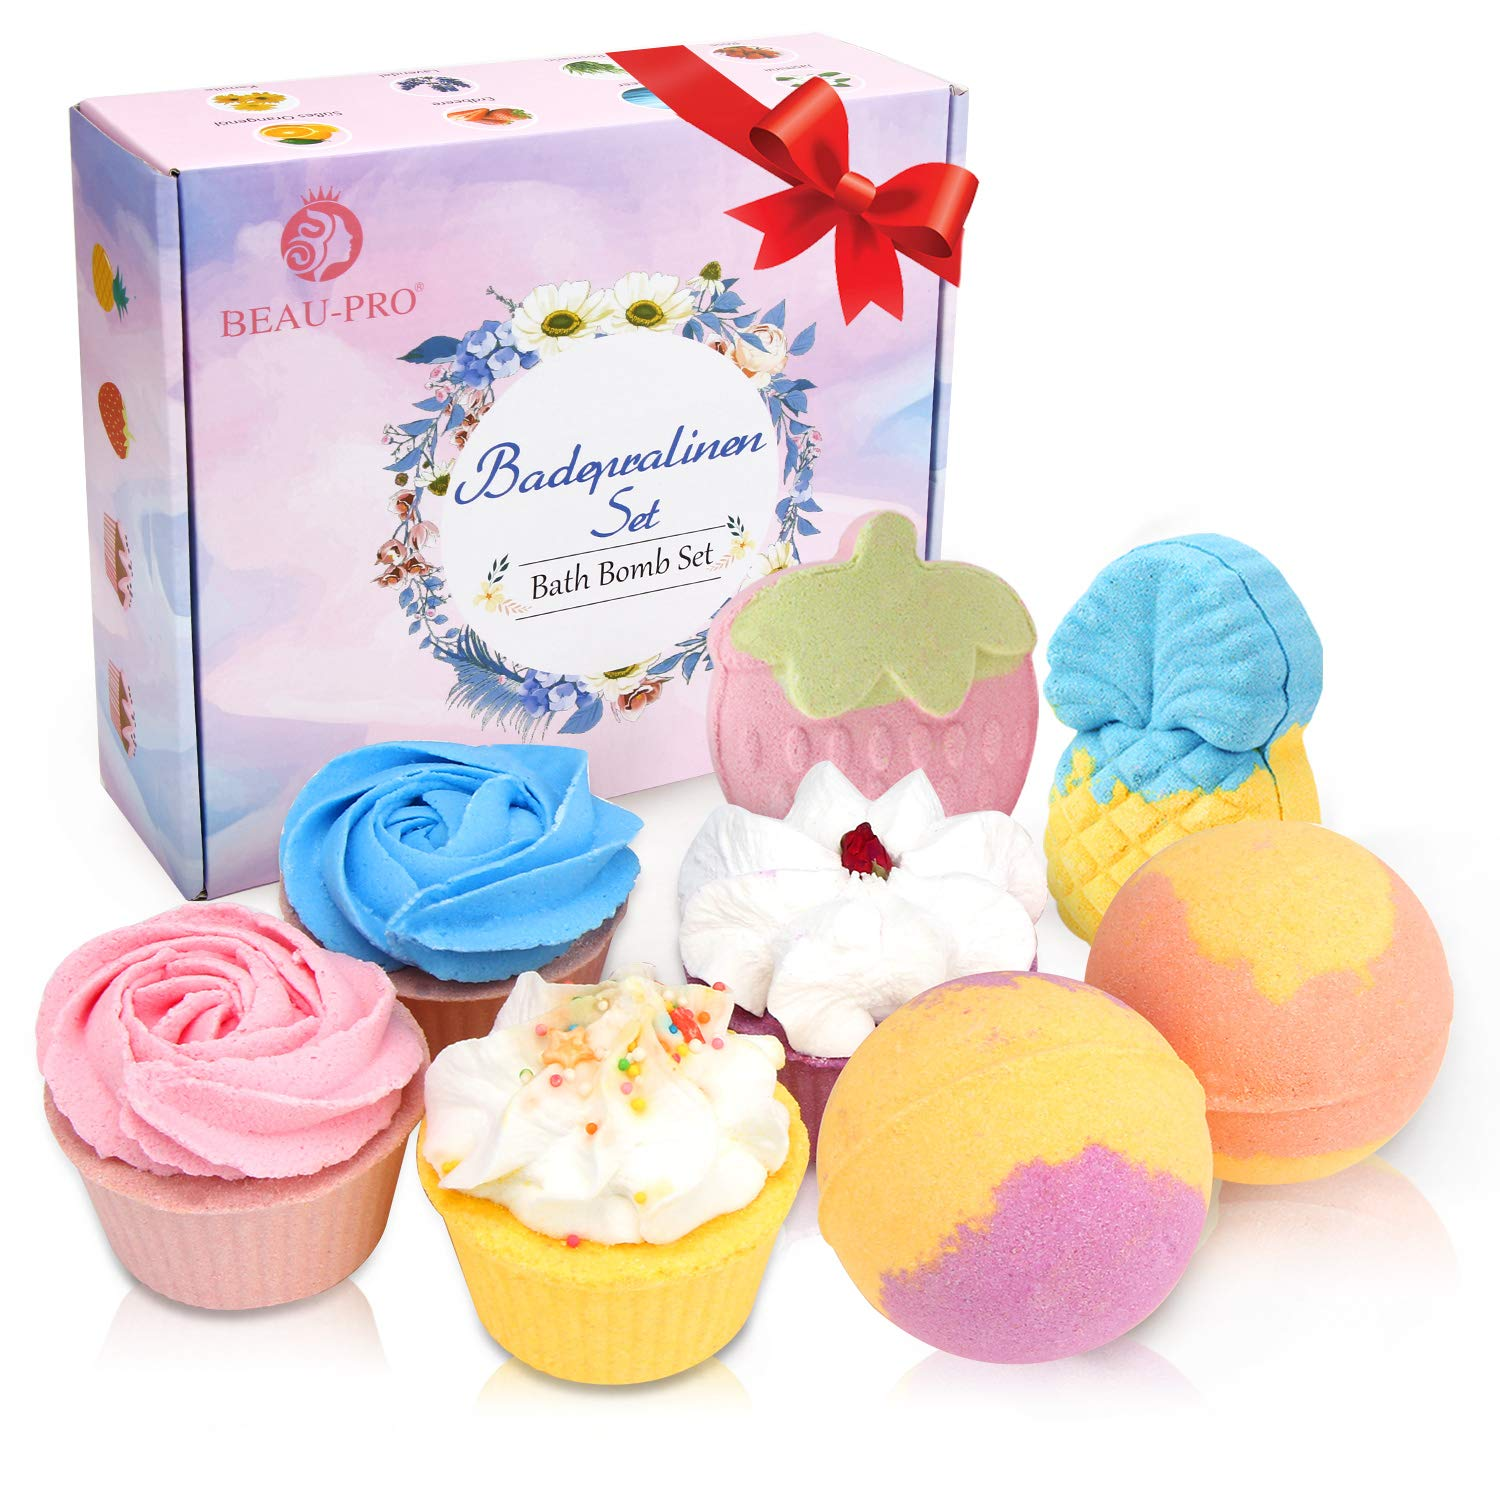 Bath Bombs, 8 pcs Natural & Mixed Colour Bubble Bath Gift Set, Fizzy Spa to Moisturize Dry Skin, Best Gift for Your Beloved on Christmas Birthday Valentines Anniversary